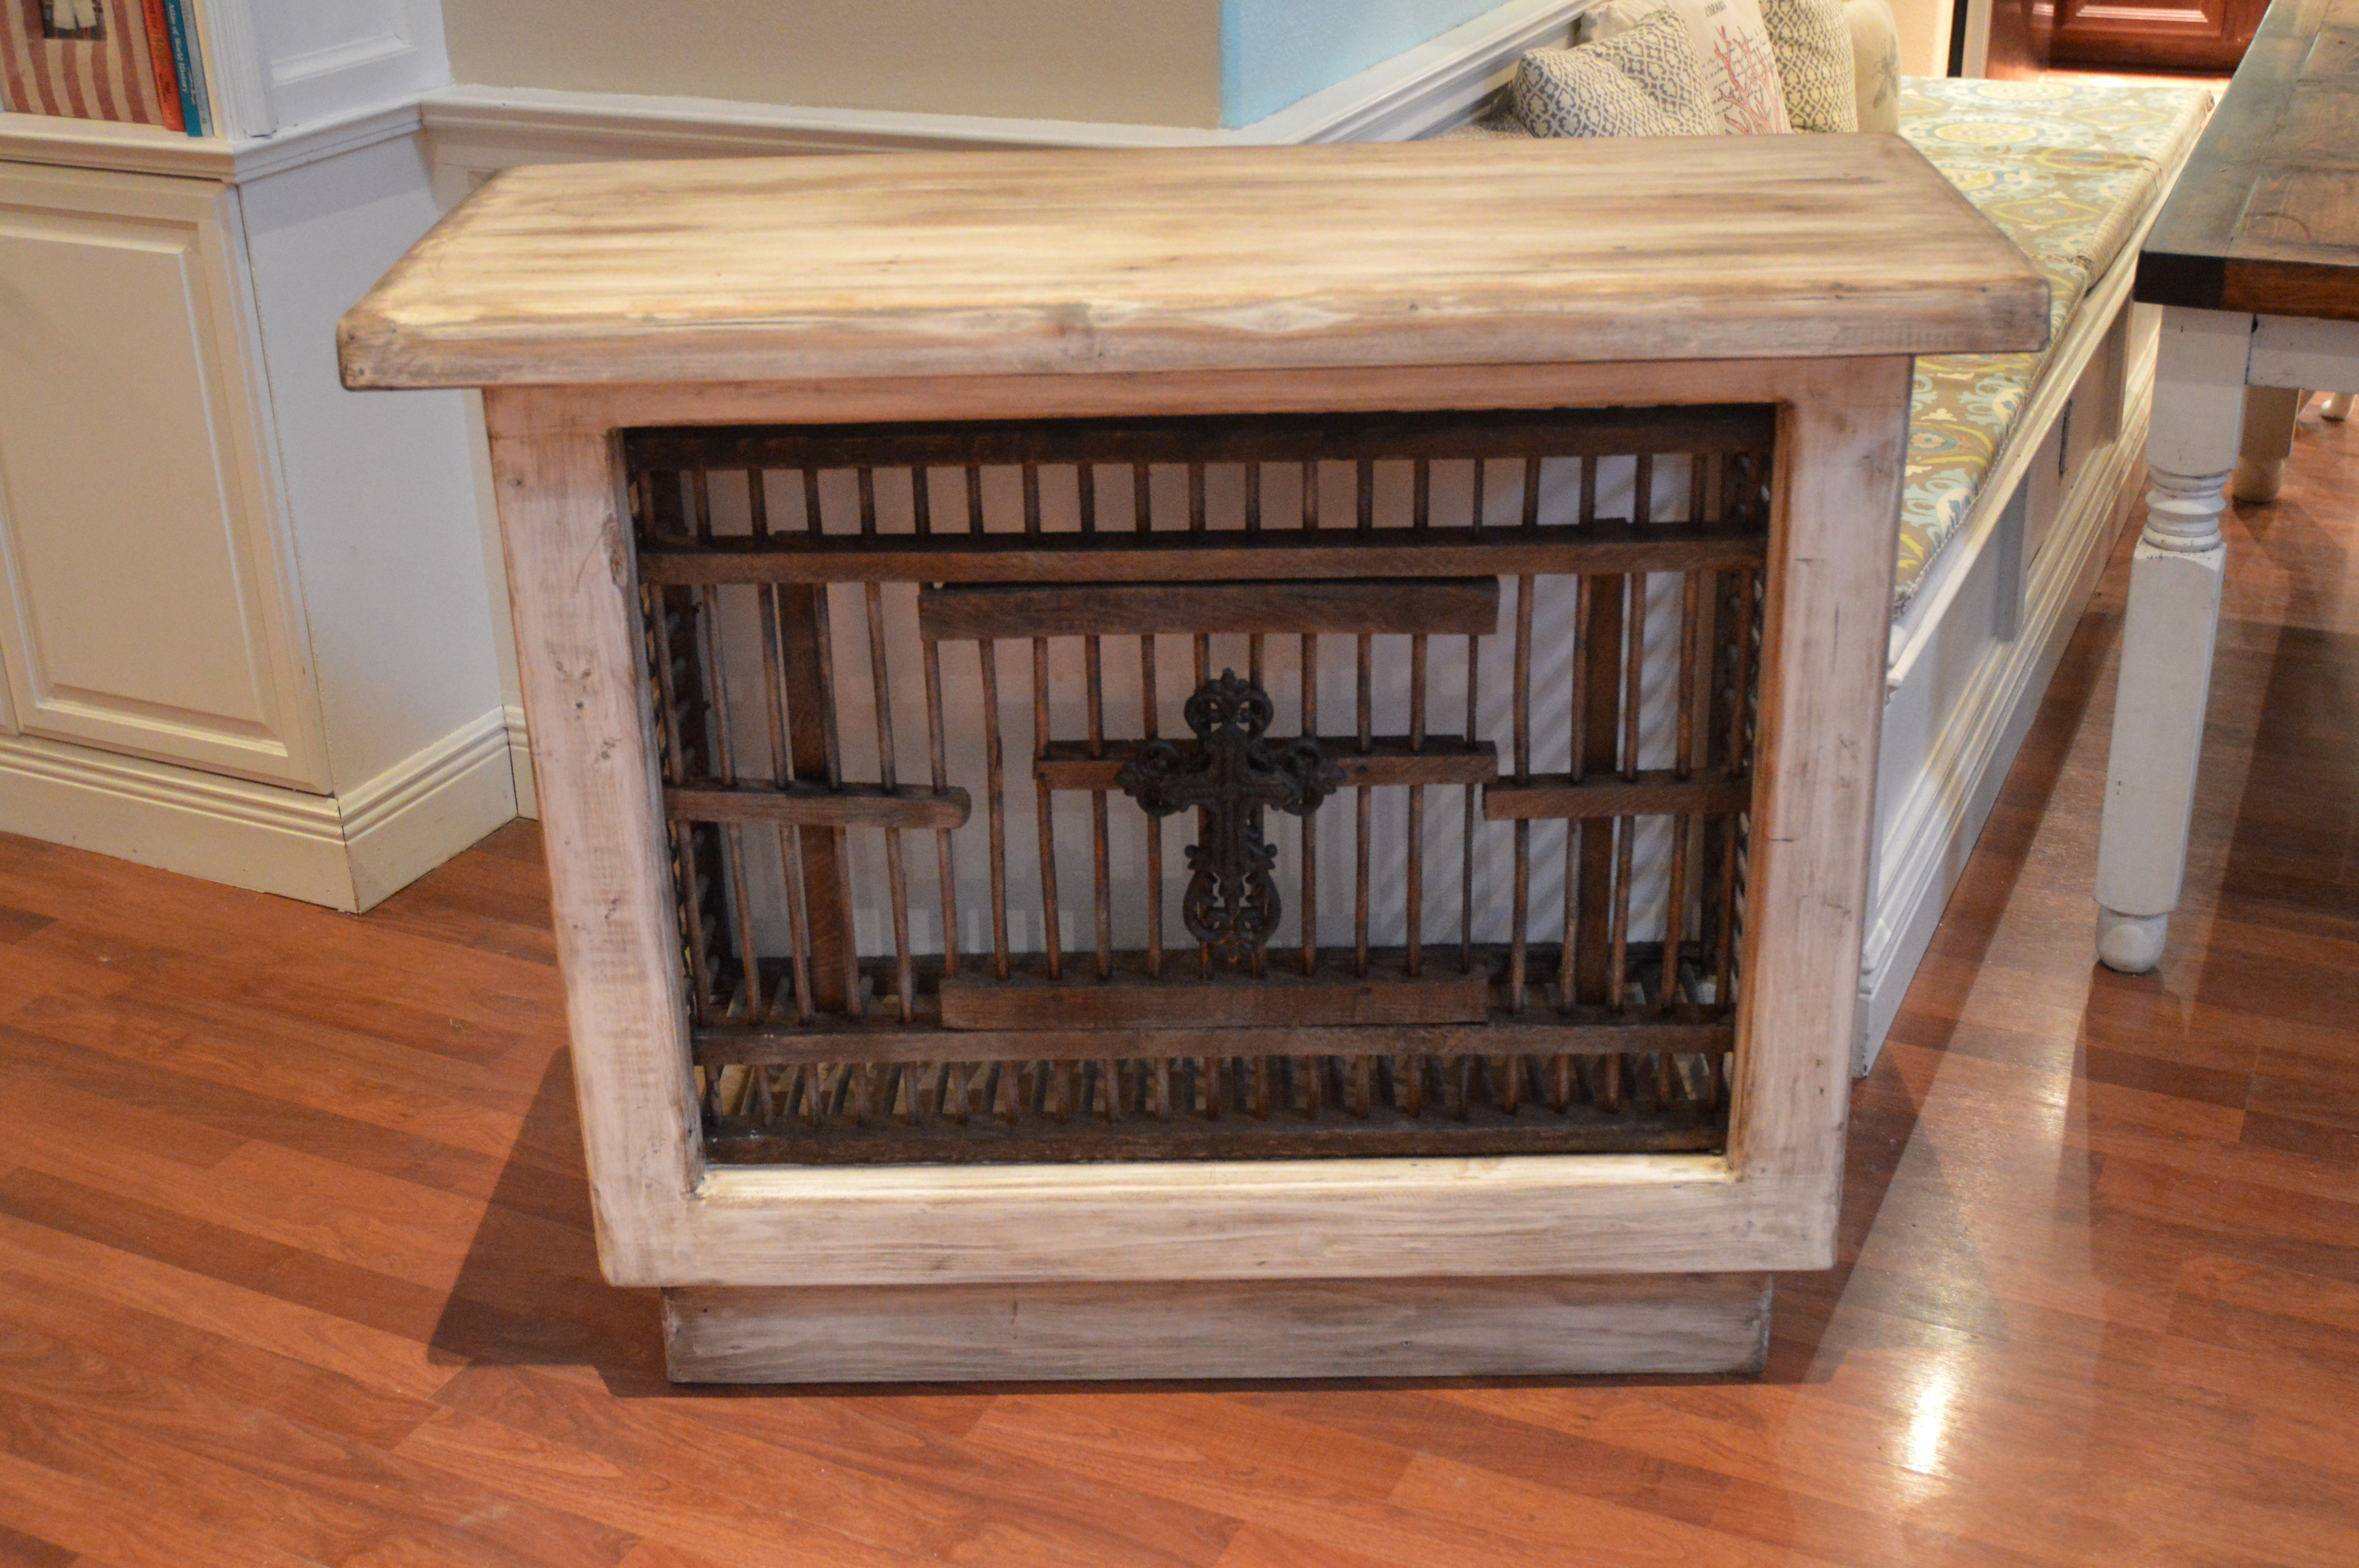 Rustic Home Decor - This was built using an old chicken crate!